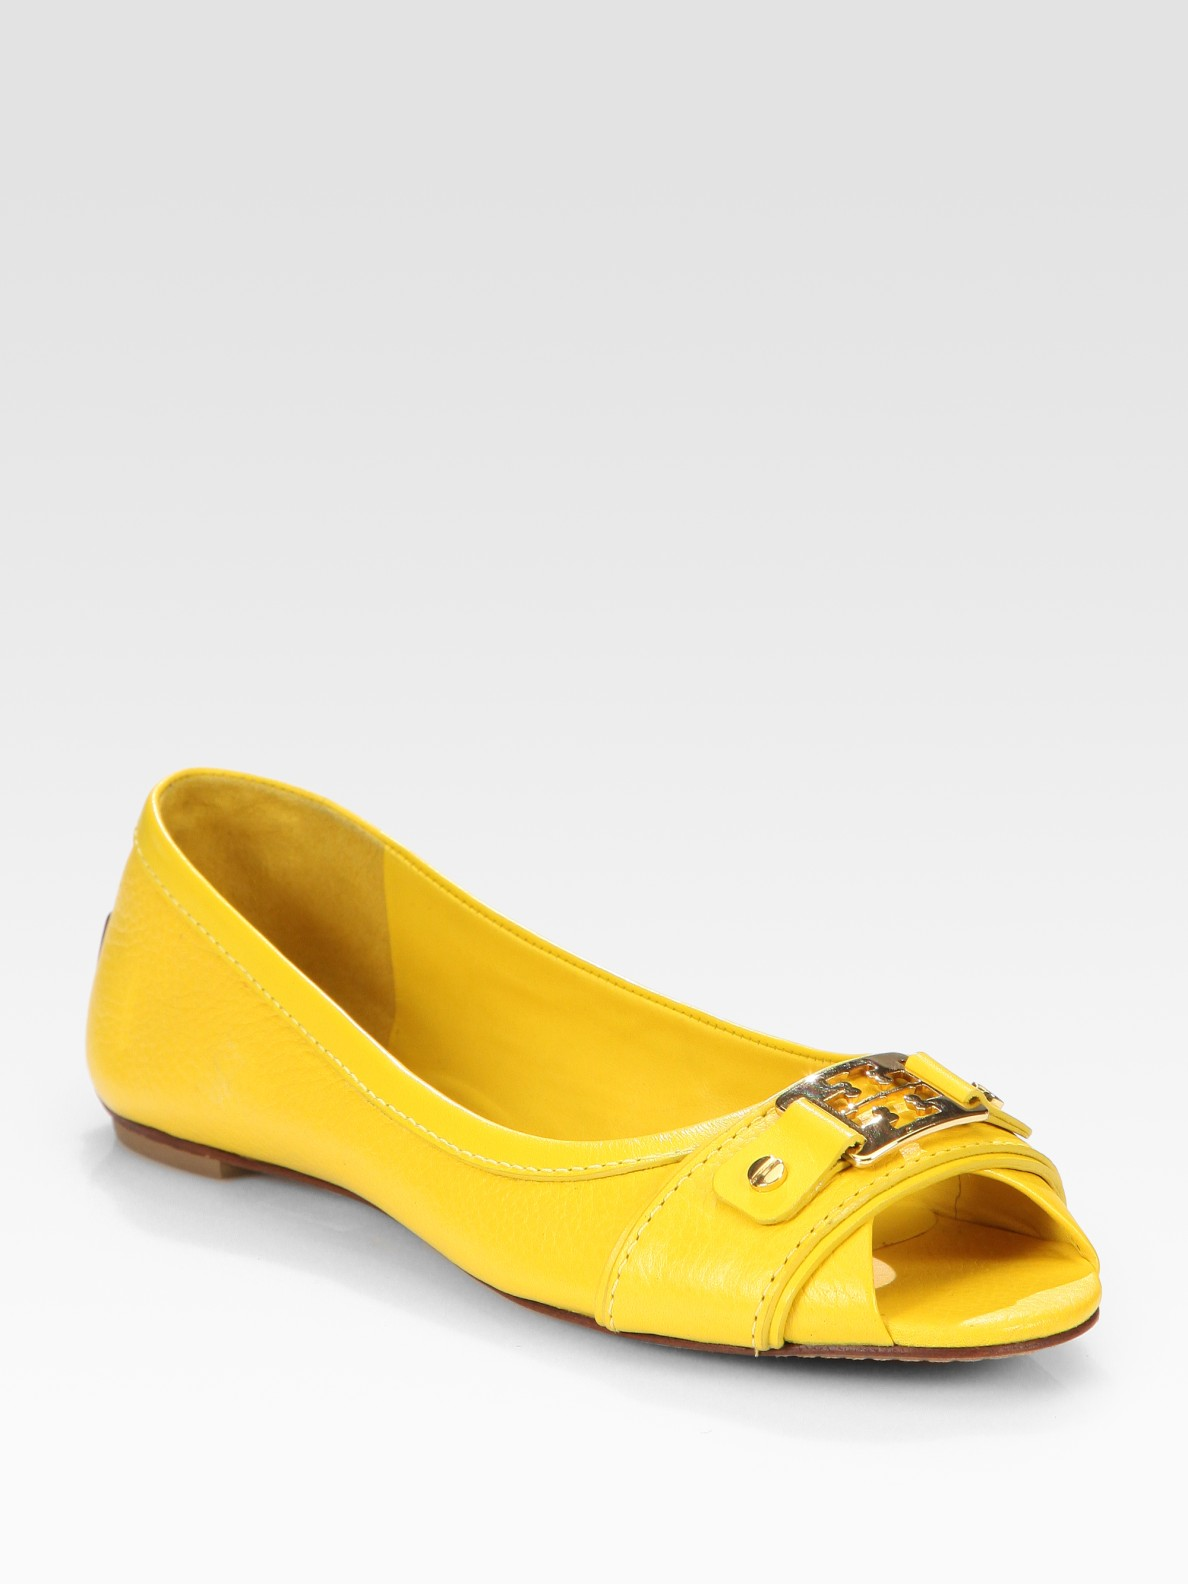 21db91c1a ... uk lyst tory burch cline leather peep toe logo ballet flats in yellow  7c707 e3295